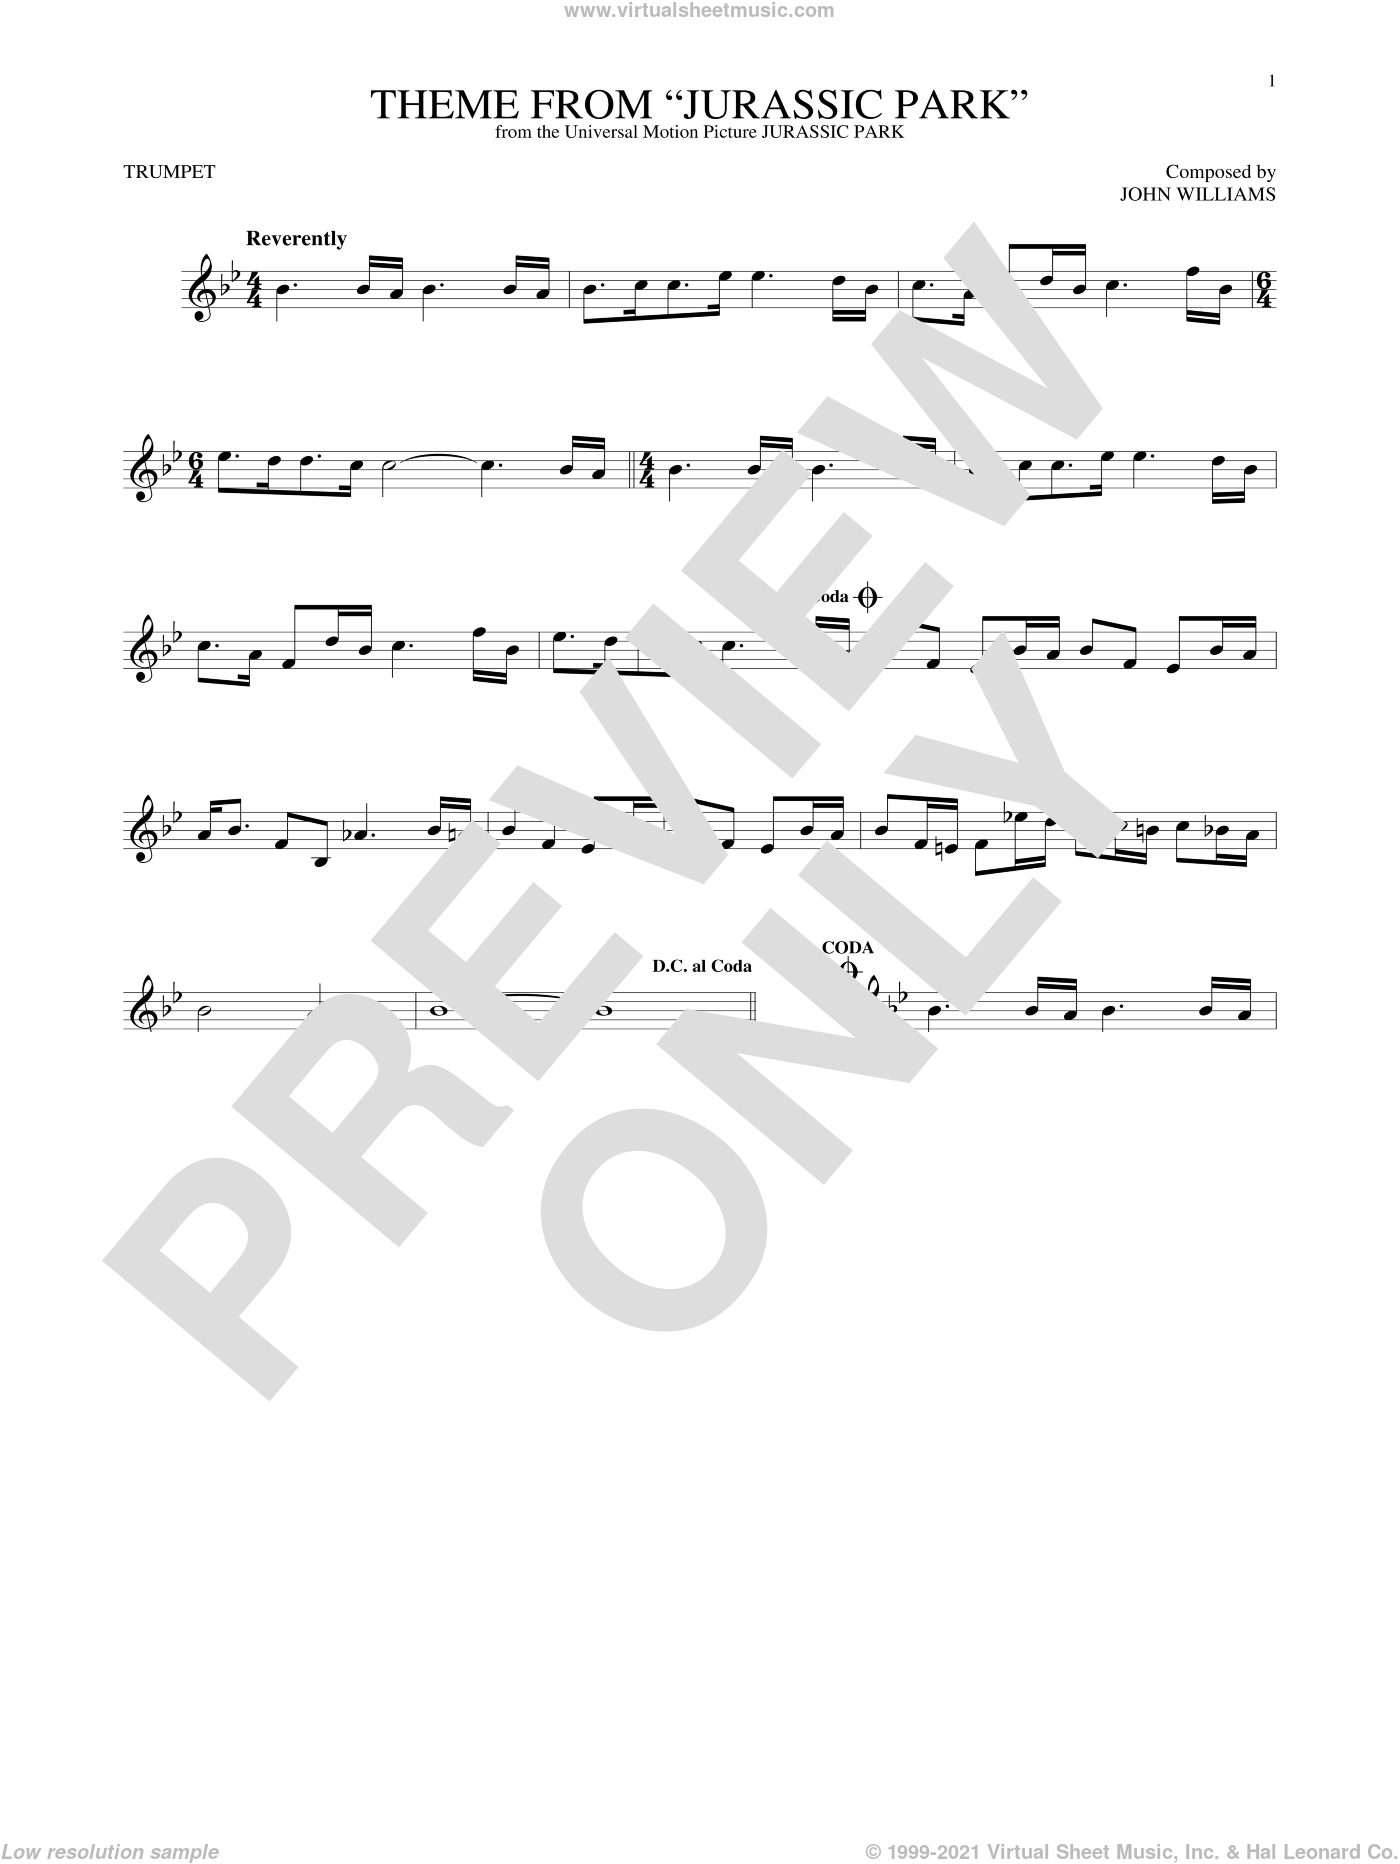 Theme From Jurassic Park sheet music for trumpet solo by John Williams, intermediate skill level